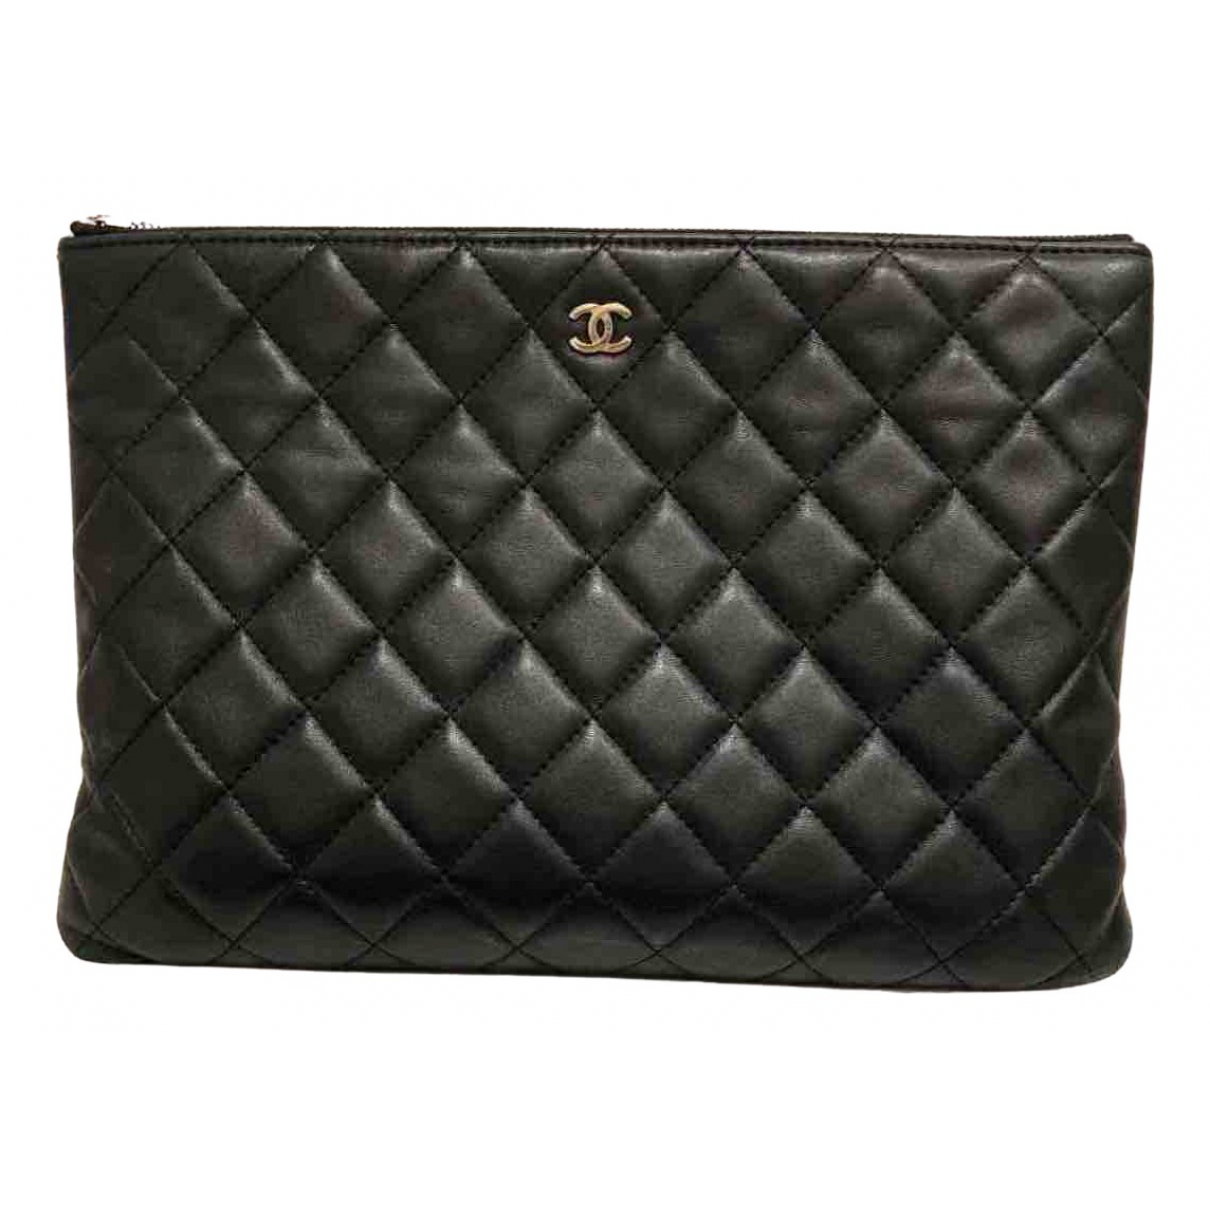 Chanel Timeless/Classique Clutch in  Schwarz Leder